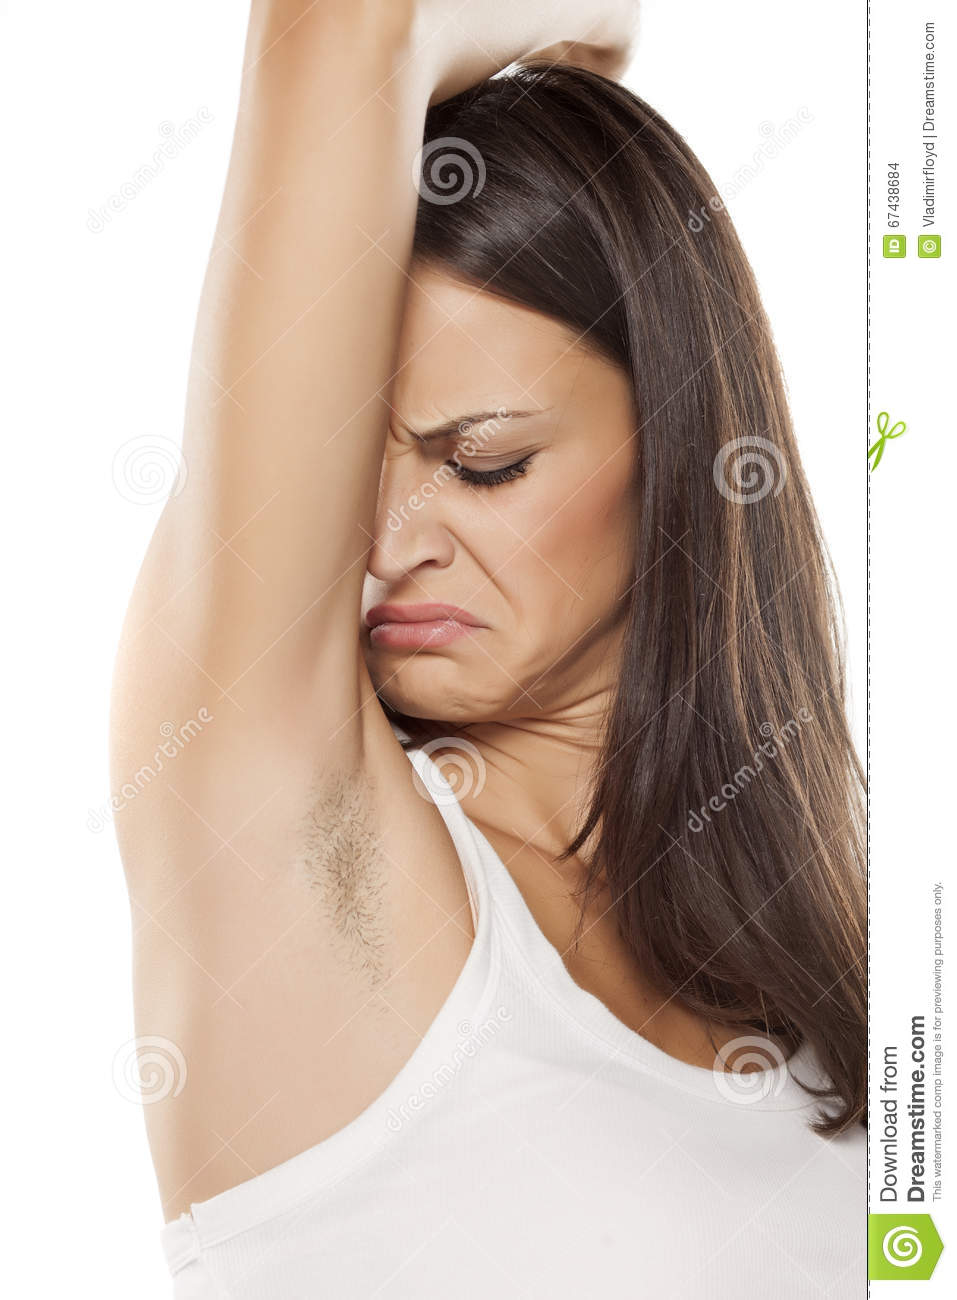 Bad armpit smell